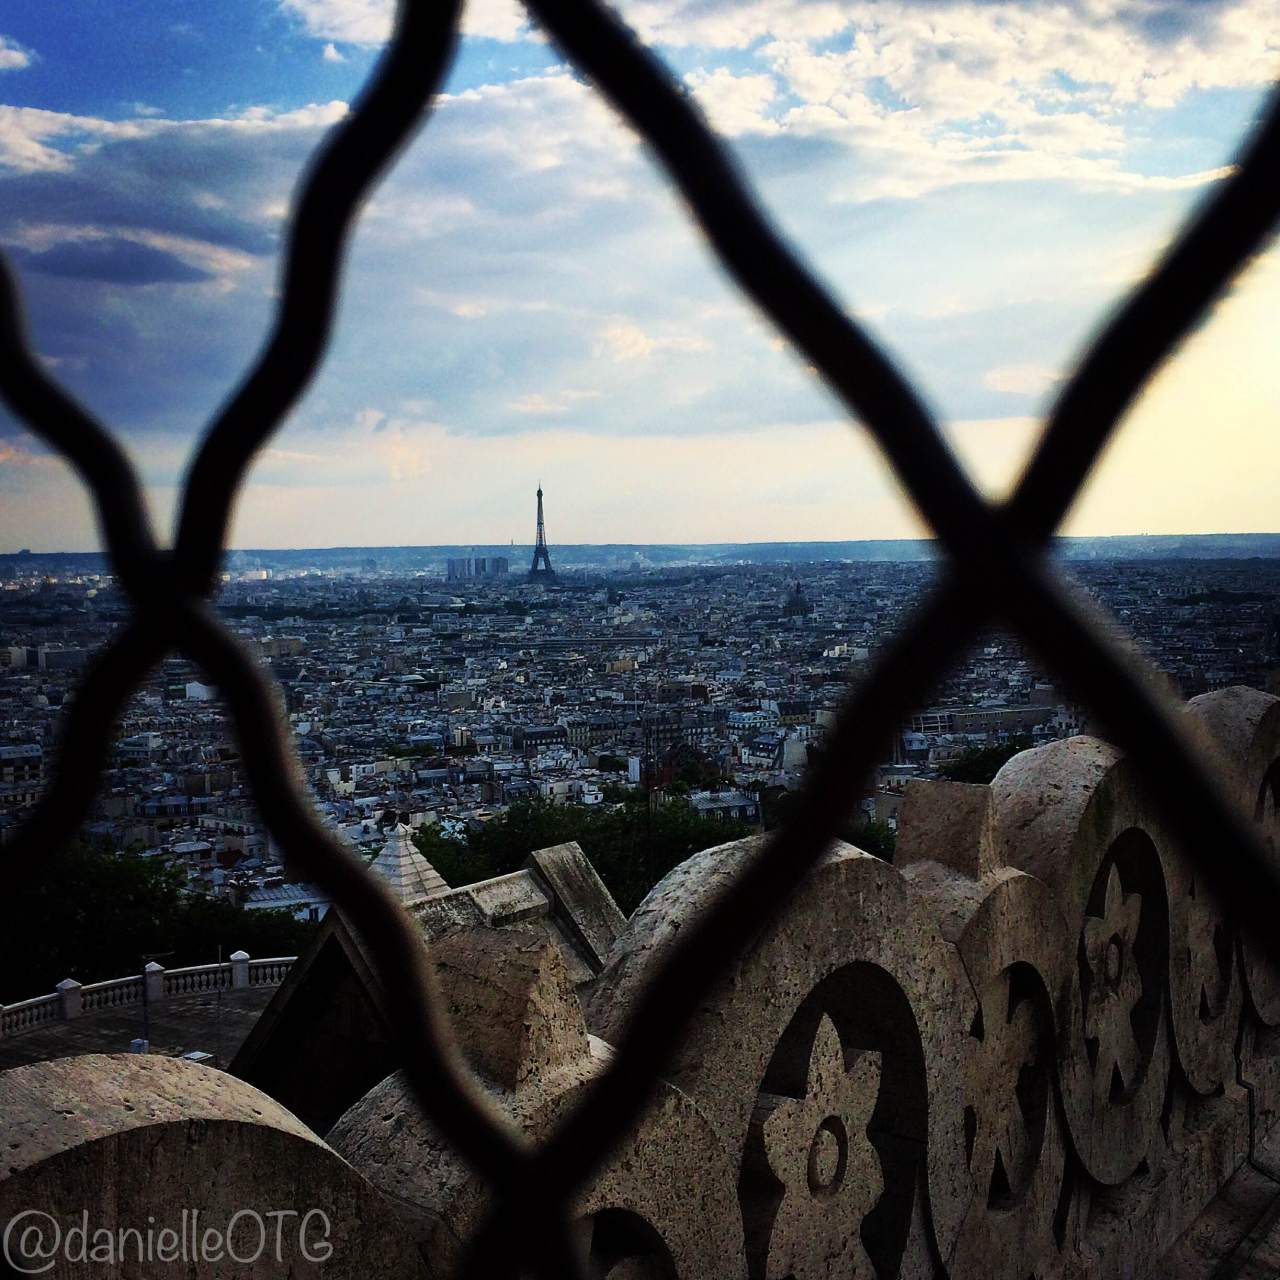 Today's On the Go Photo: Le Eiffel Tower from the Sacre Coeur Dome